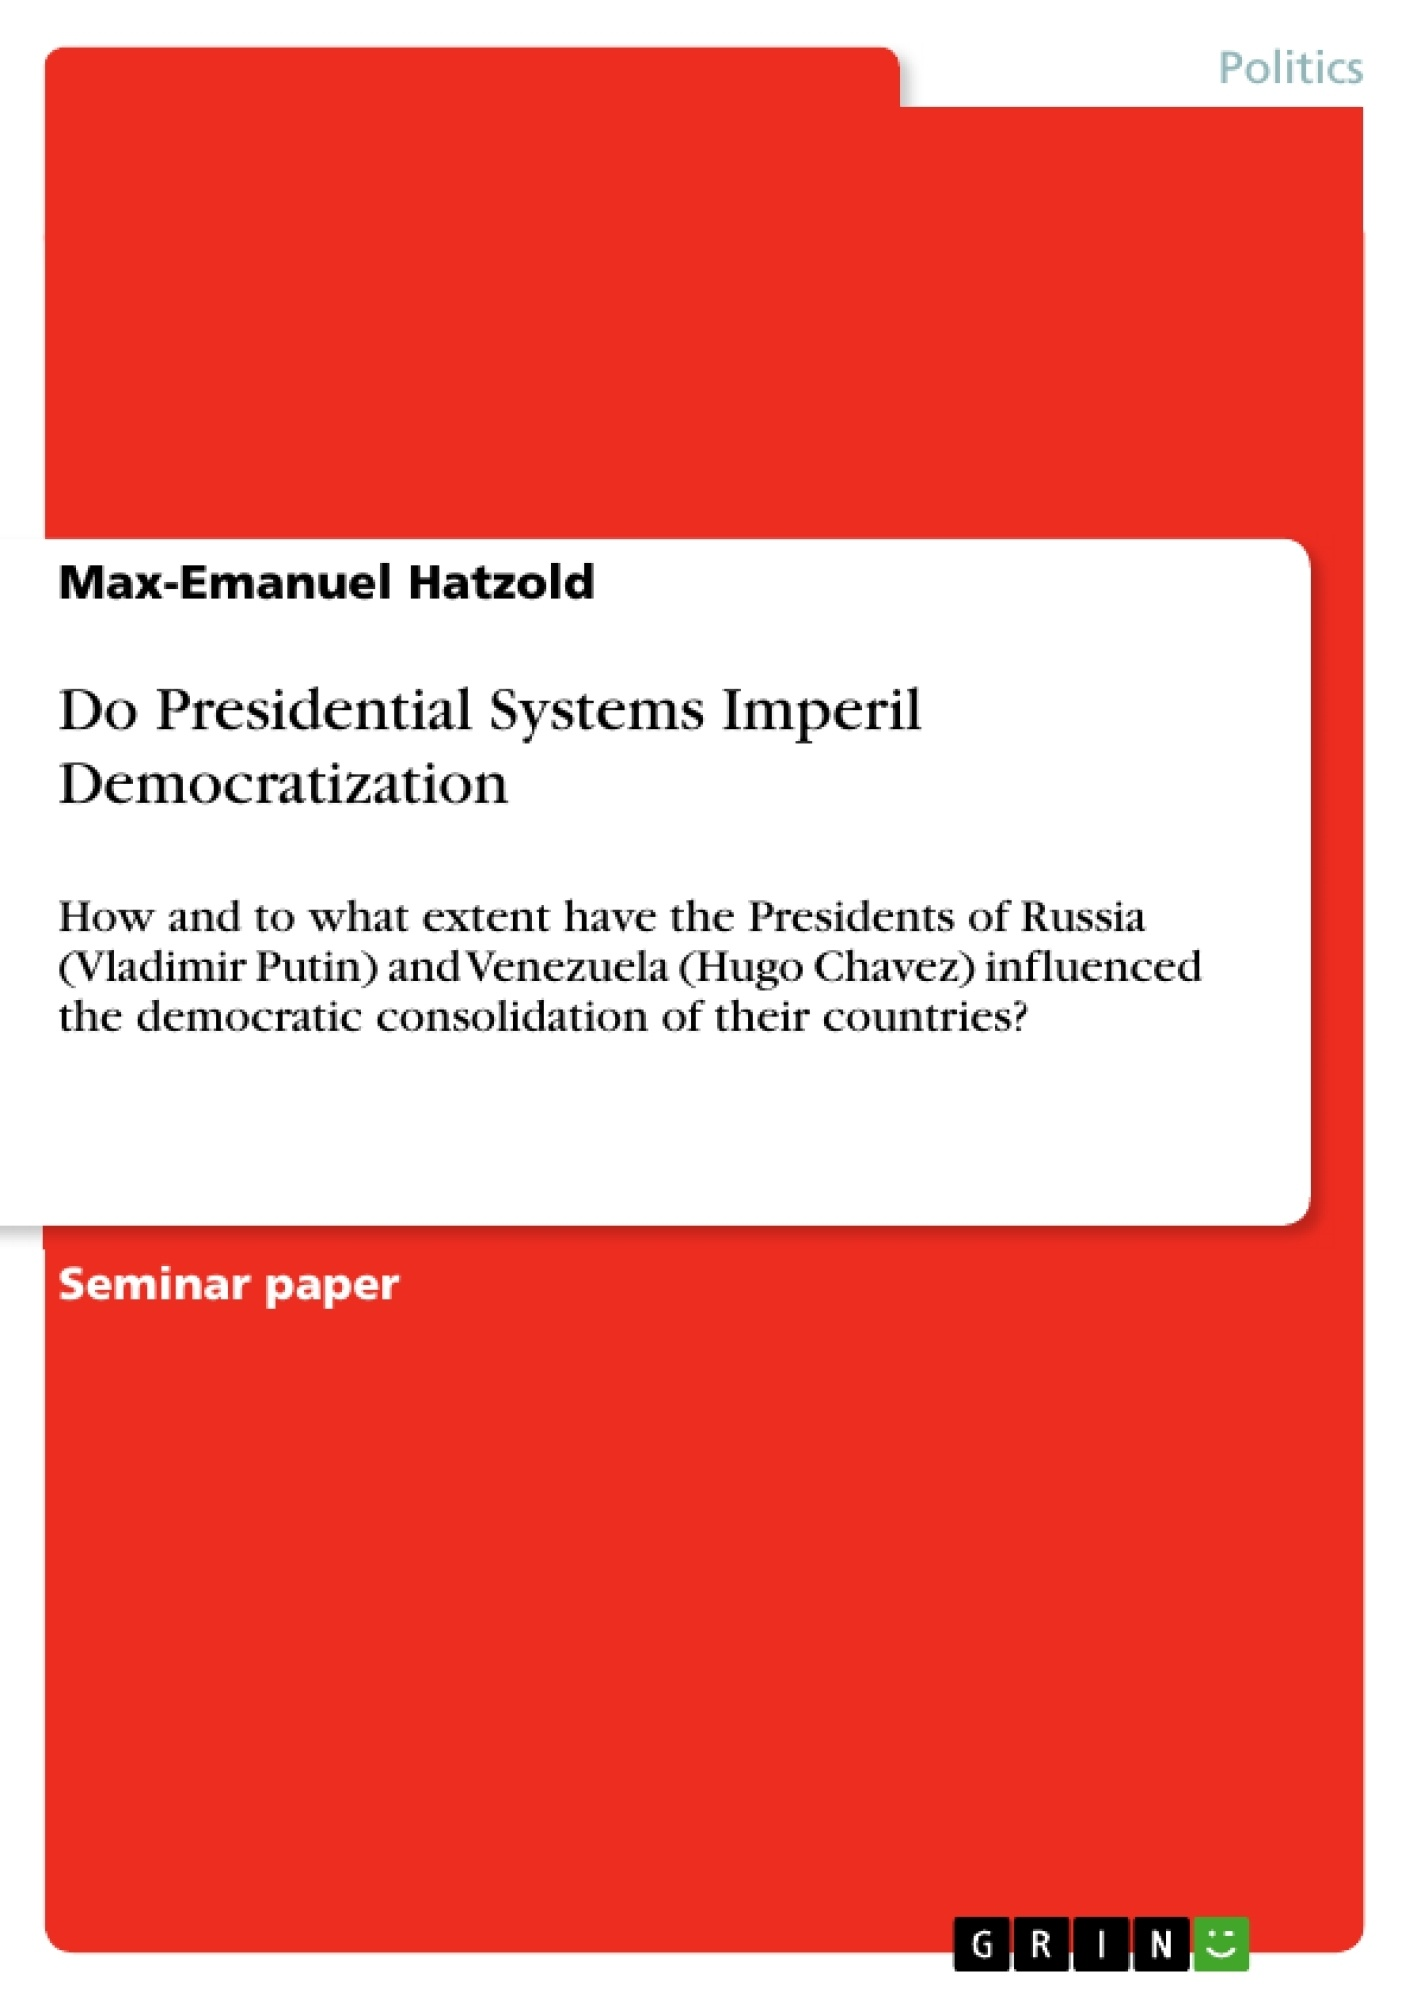 Title: Do Presidential Systems Imperil Democratization